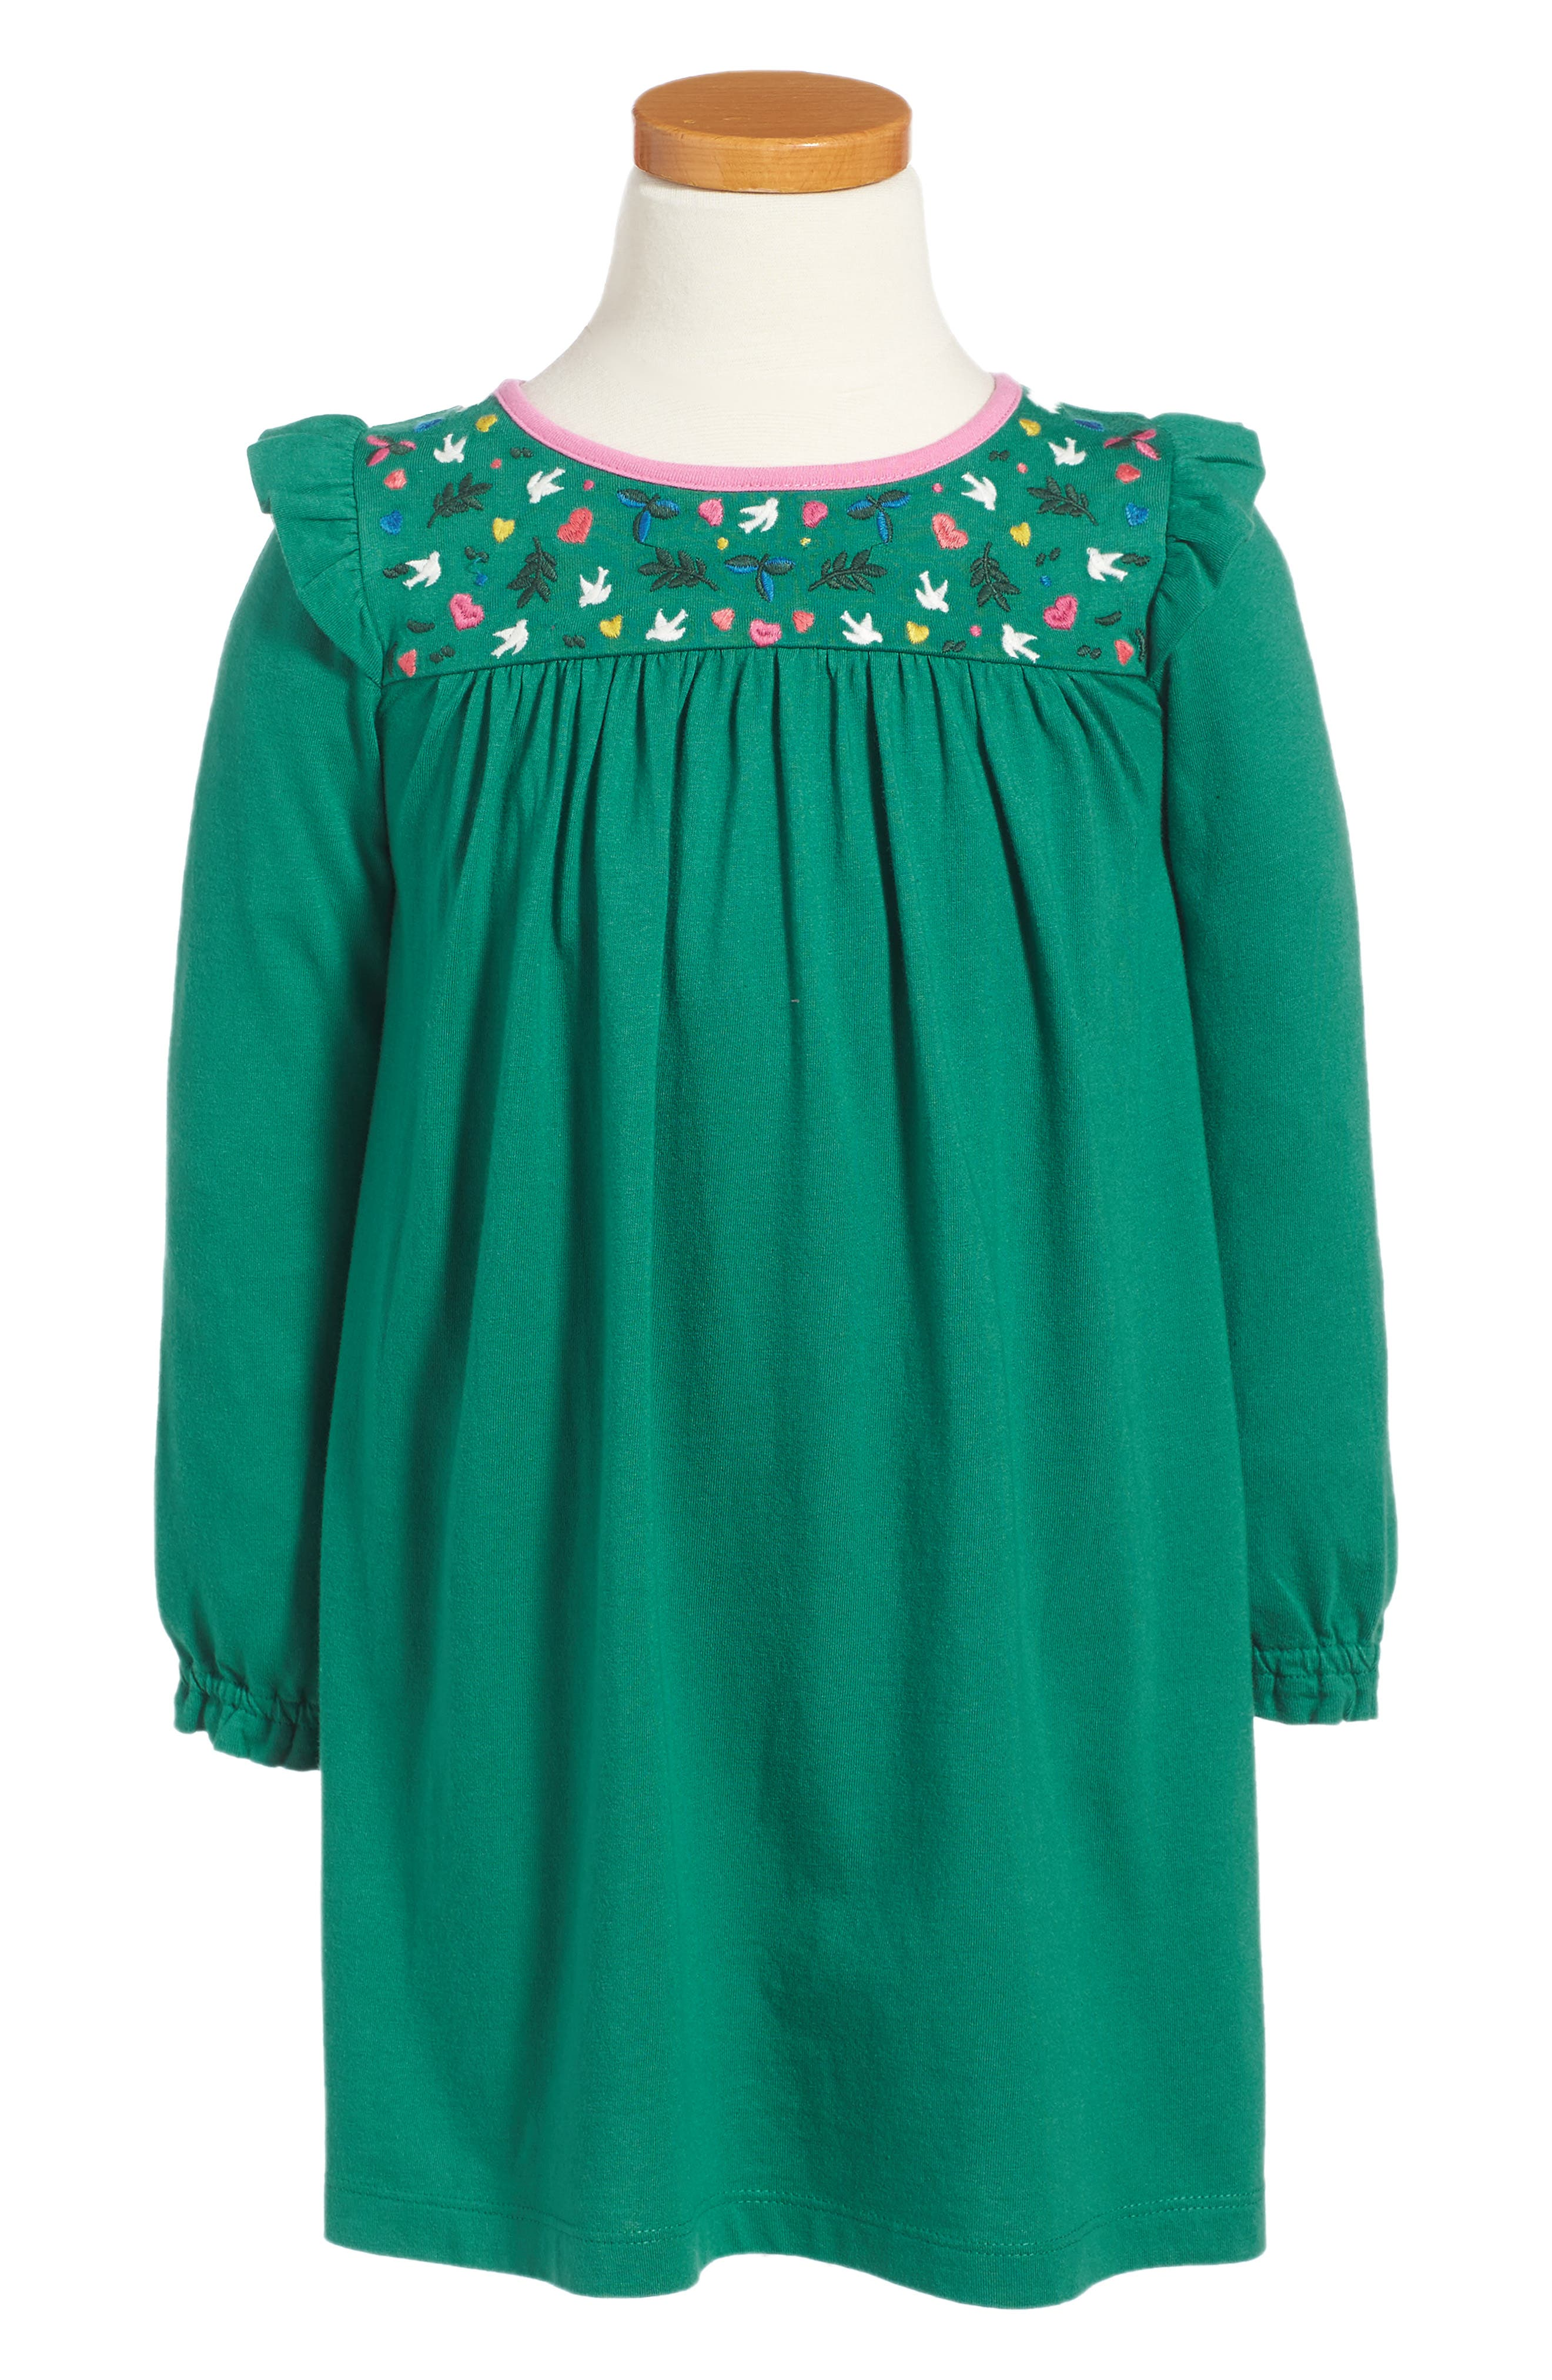 MINI BODEN Frill Jersey Dress